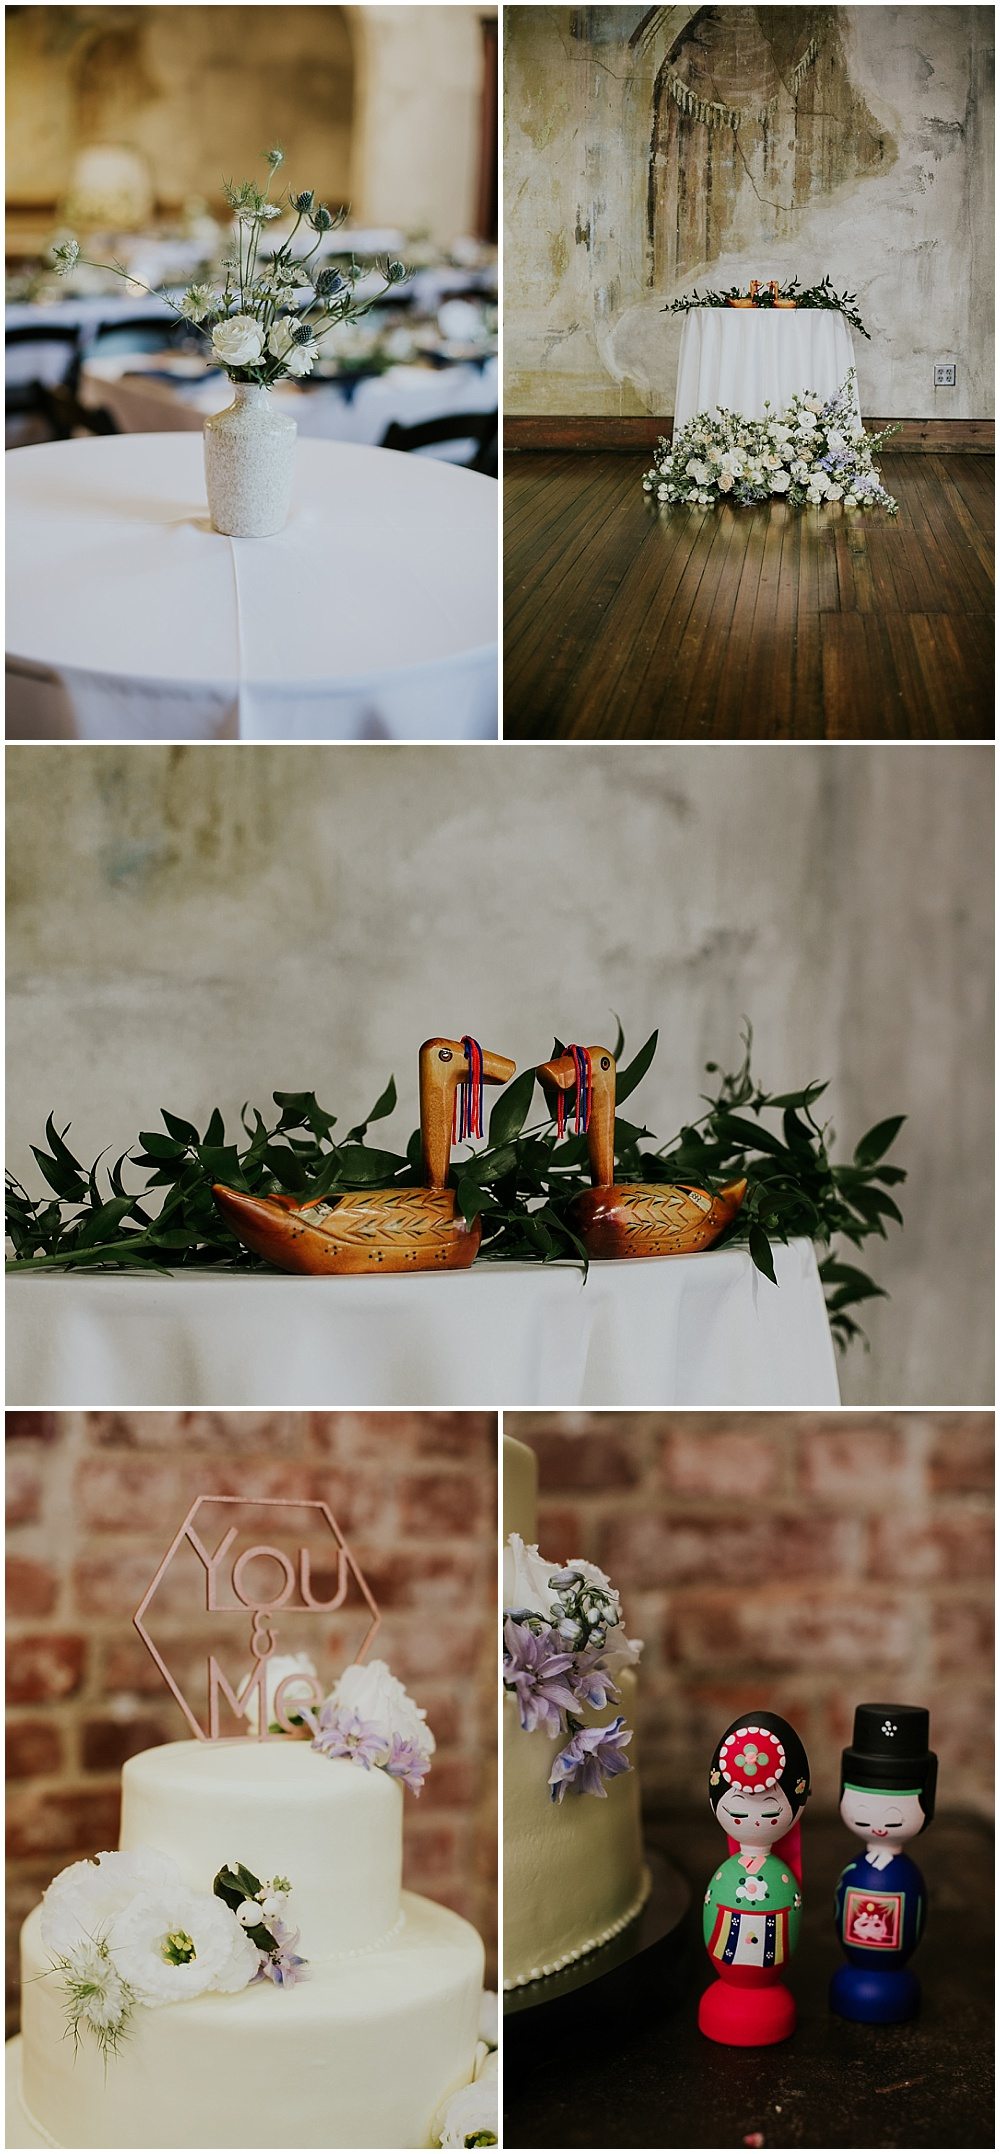 White, green and blue wedding details with Korean heritage elements | Korean-American intimate multicultural wedding in Neidhammer coffee shop